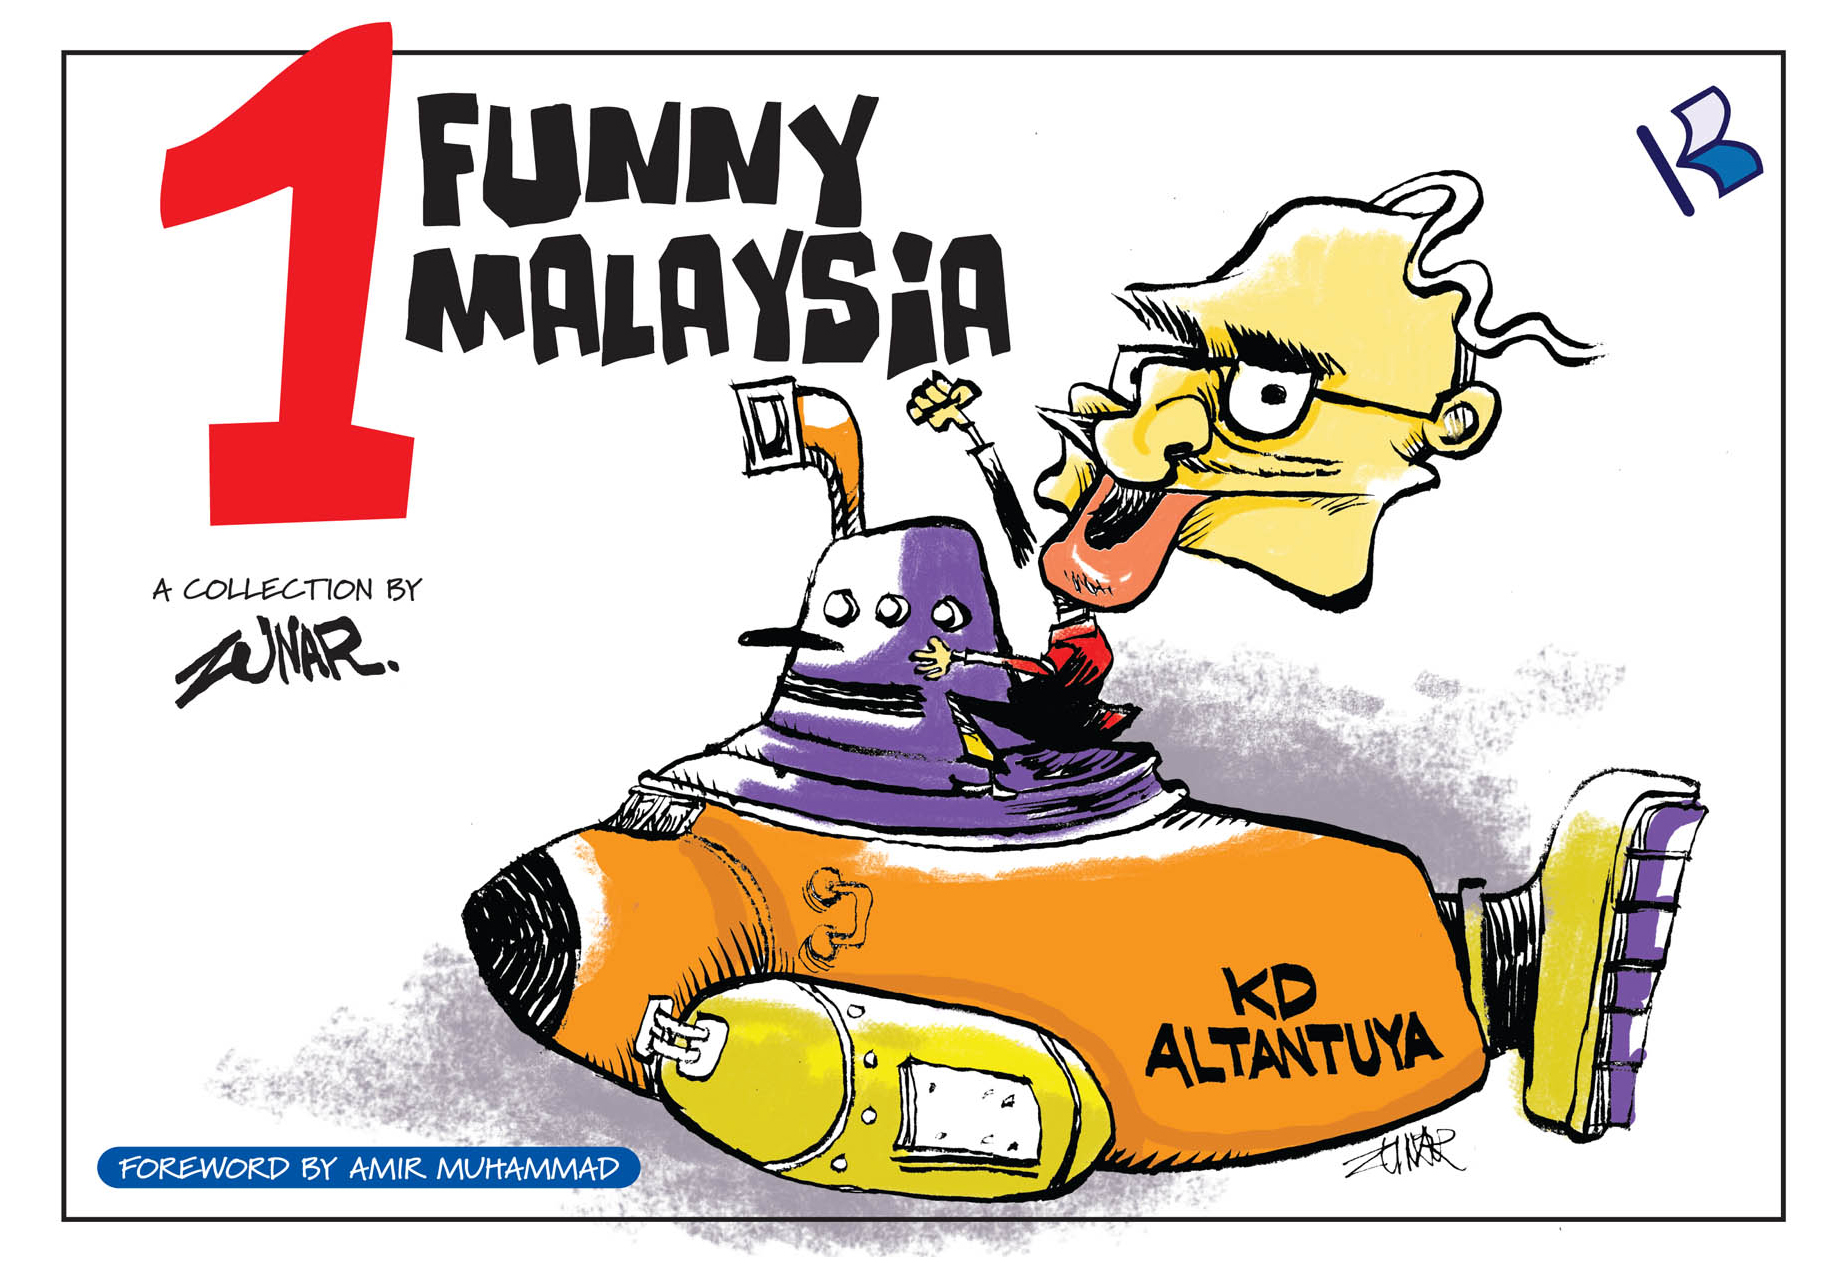 Image from zunar.my